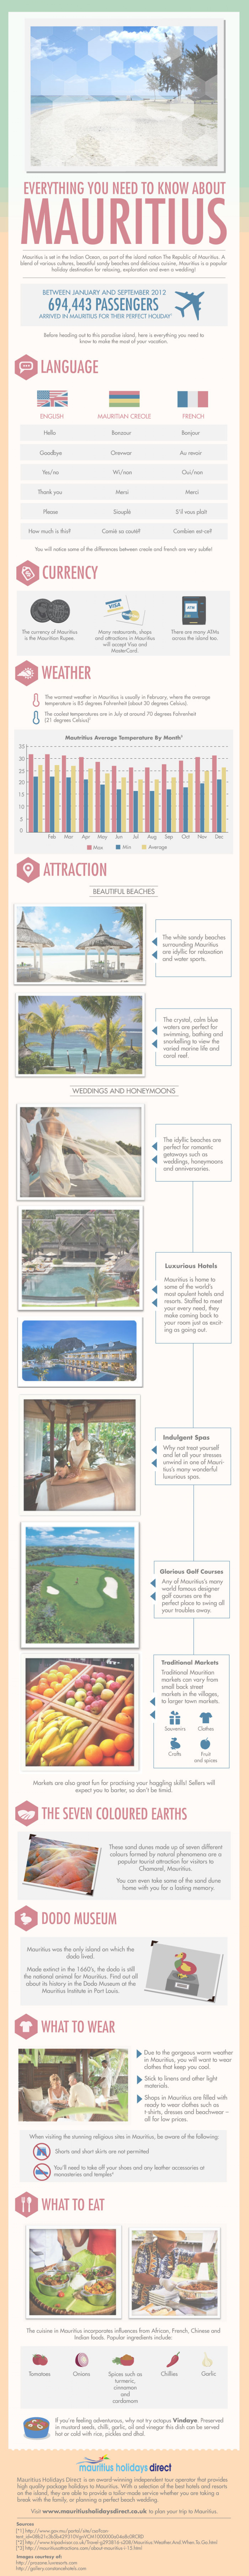 Everything You Need To Know About Mauritius Infographic